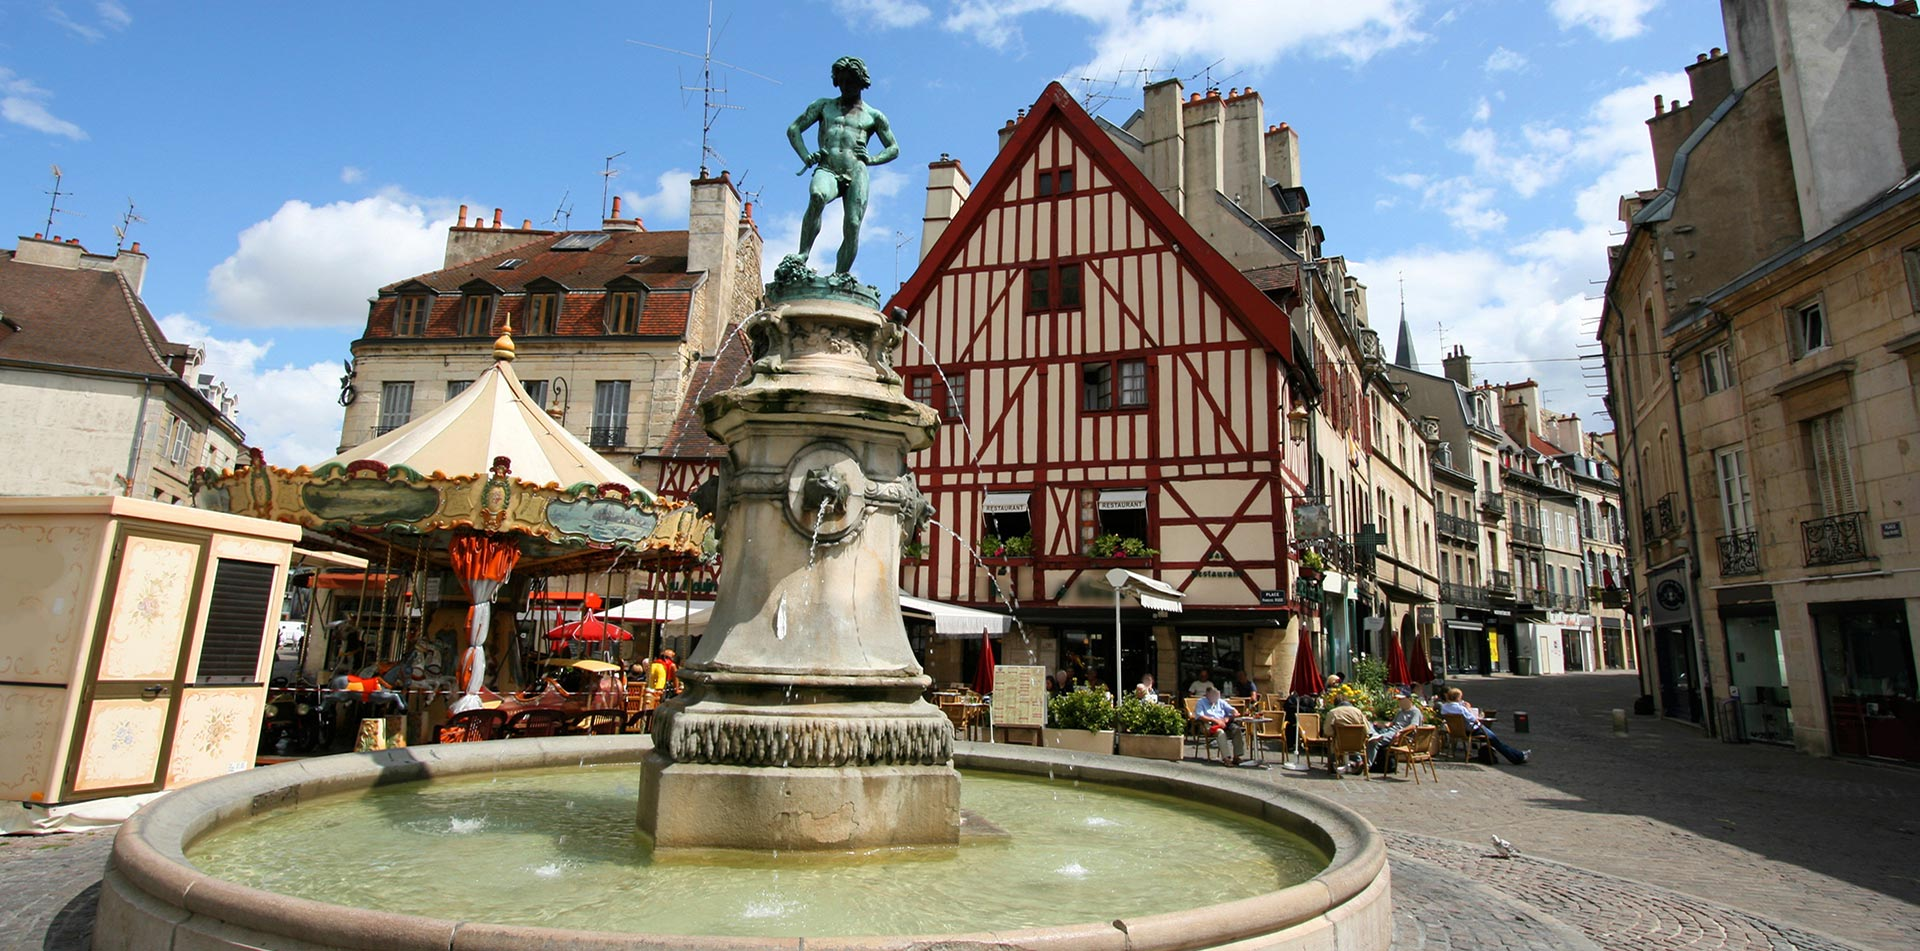 Fountain in Dijon, France